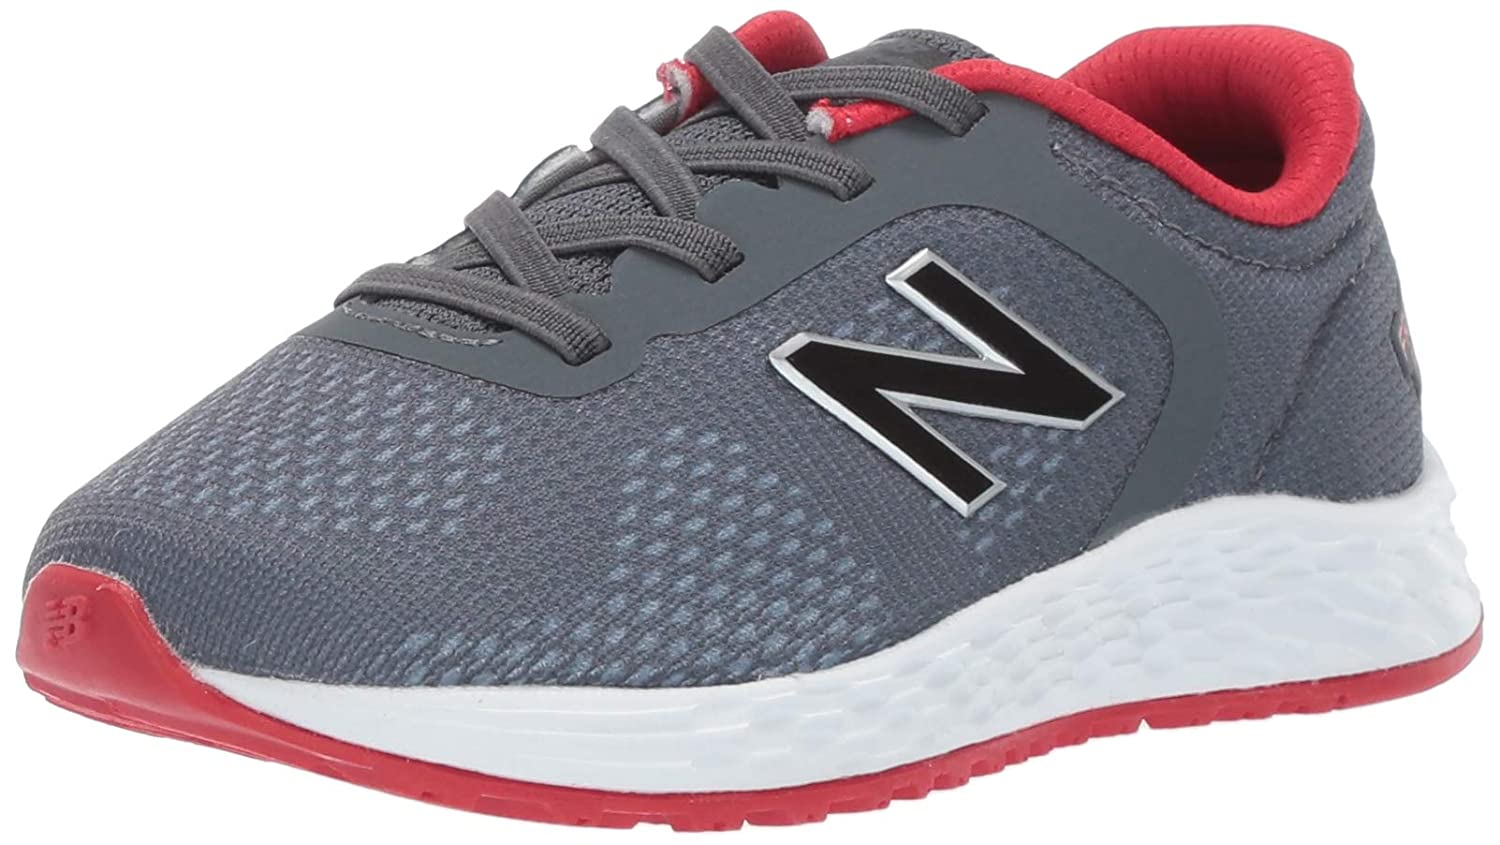 世界の [ニューバランス] ユニセックスキッズ NB19-IAARICC2-Infant Girls Girls B07BQV74MD Red|6 Gunmetal 幼児(1~4才)/Energy Red 幼児(1~4才) 幼児(1~4才)|Gunmetal/Energy Red|6 M US Toddler, 山崎町:199a3191 --- vilazh.indexis.ru